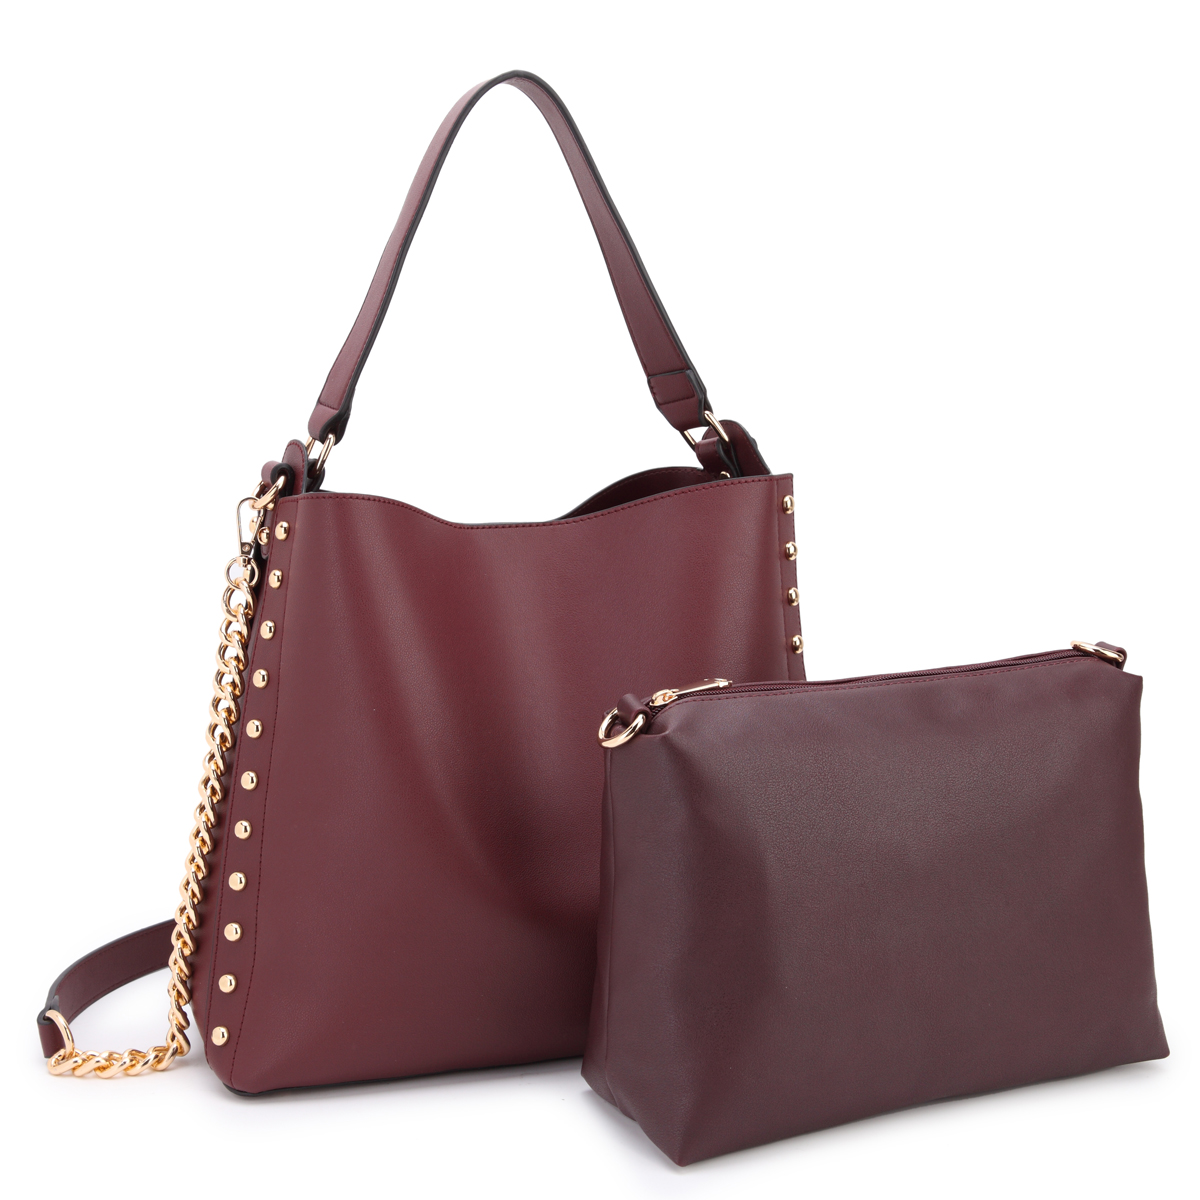 Dasein Classic Faux Leather 2-in-1 Hobo Bag with Studs design on both sides and with Matching Accessory Bag inside